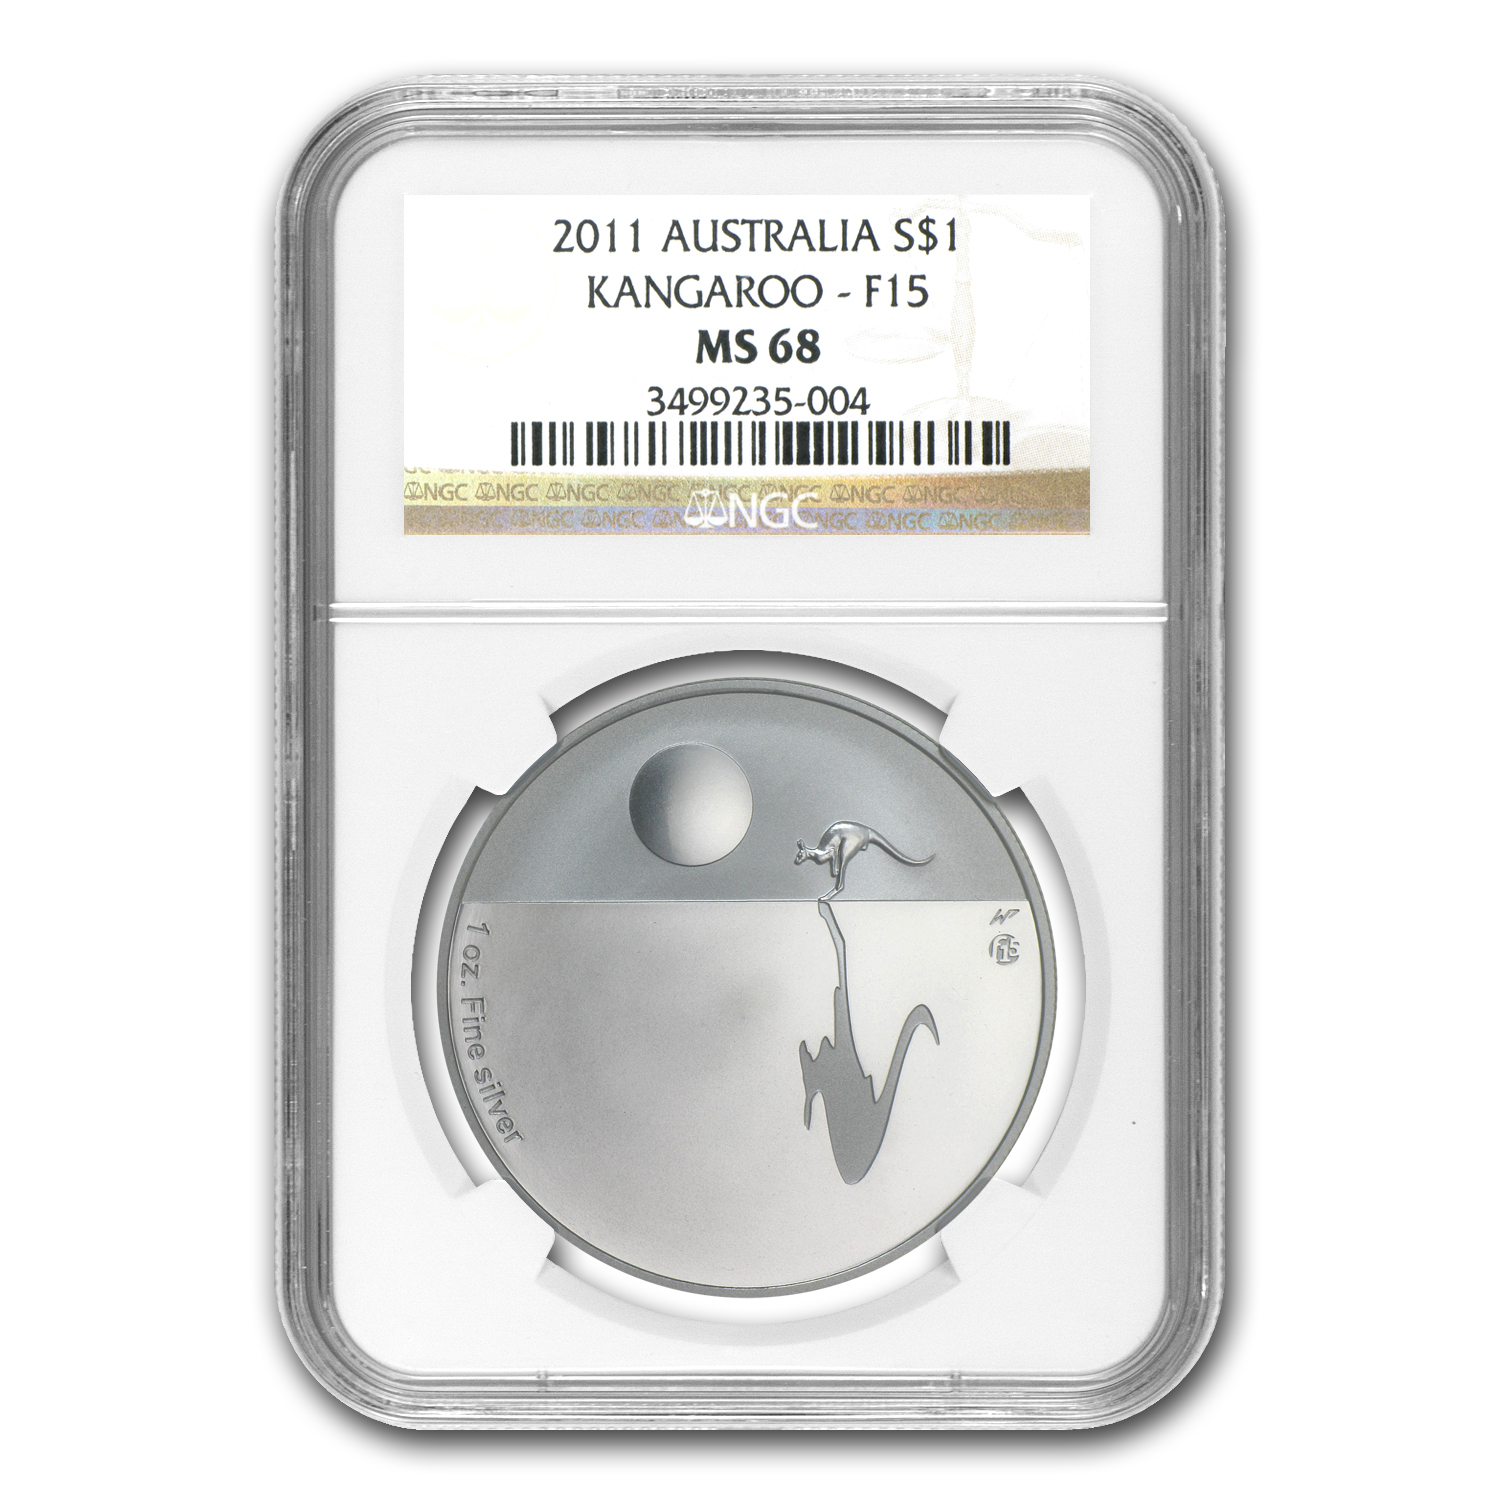 2011 1 oz Proof Silver Kangaroo at Sunset F15 Privy NGC MS-68